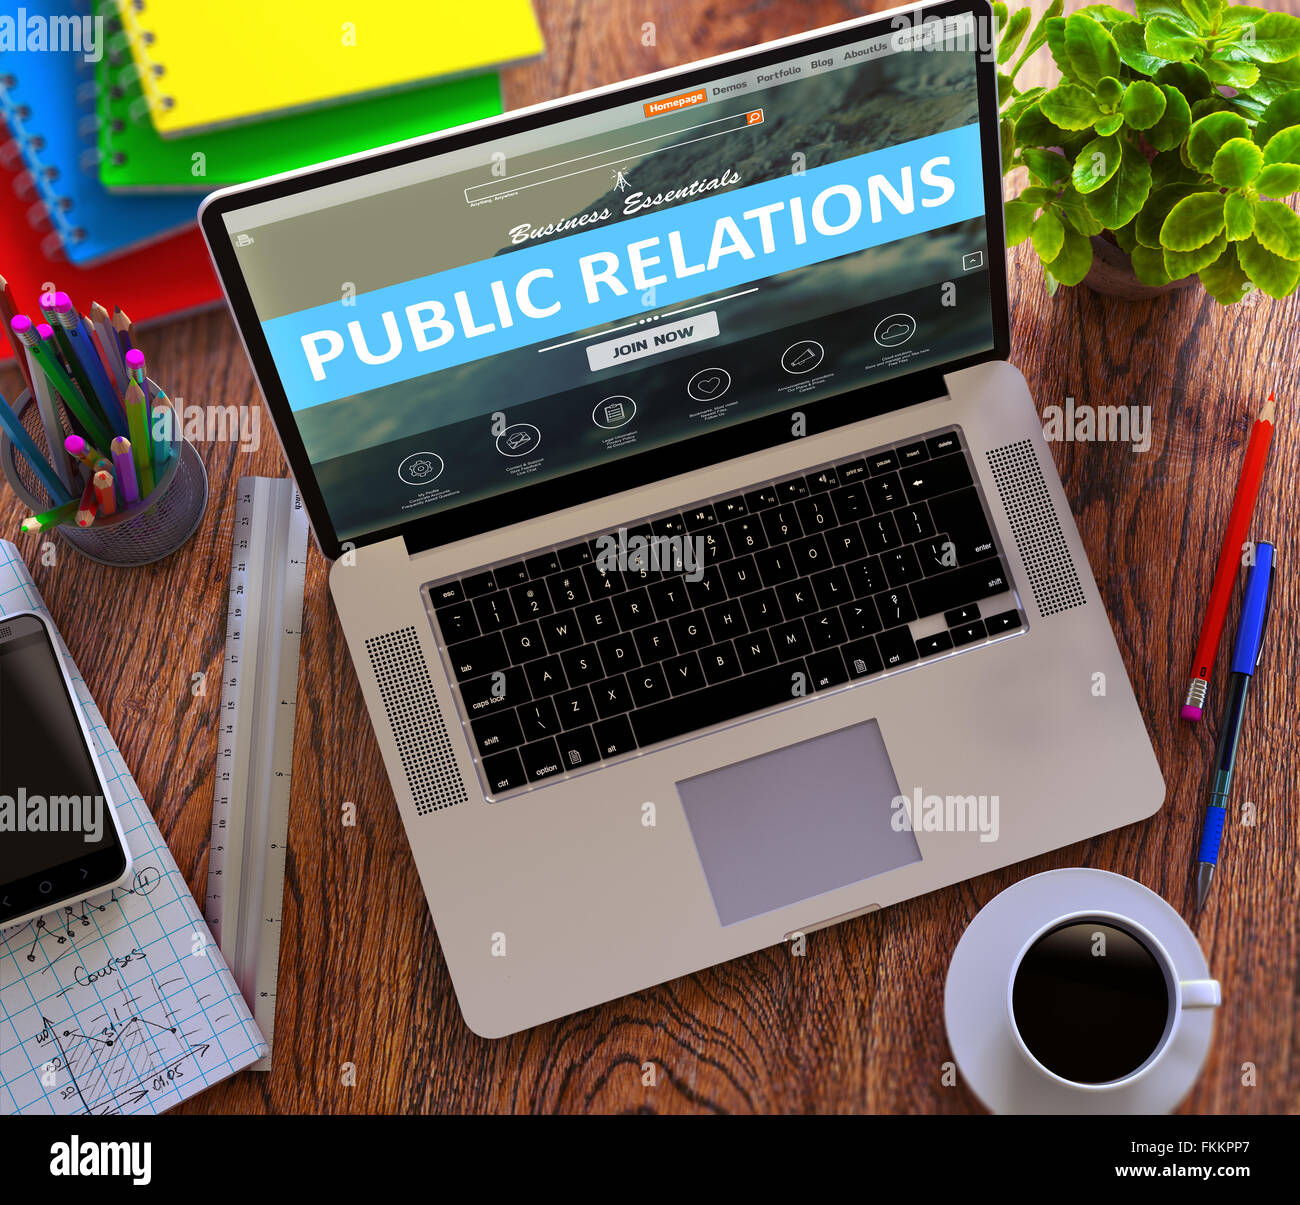 Public Relations. Promotion Concept. - Stock Image